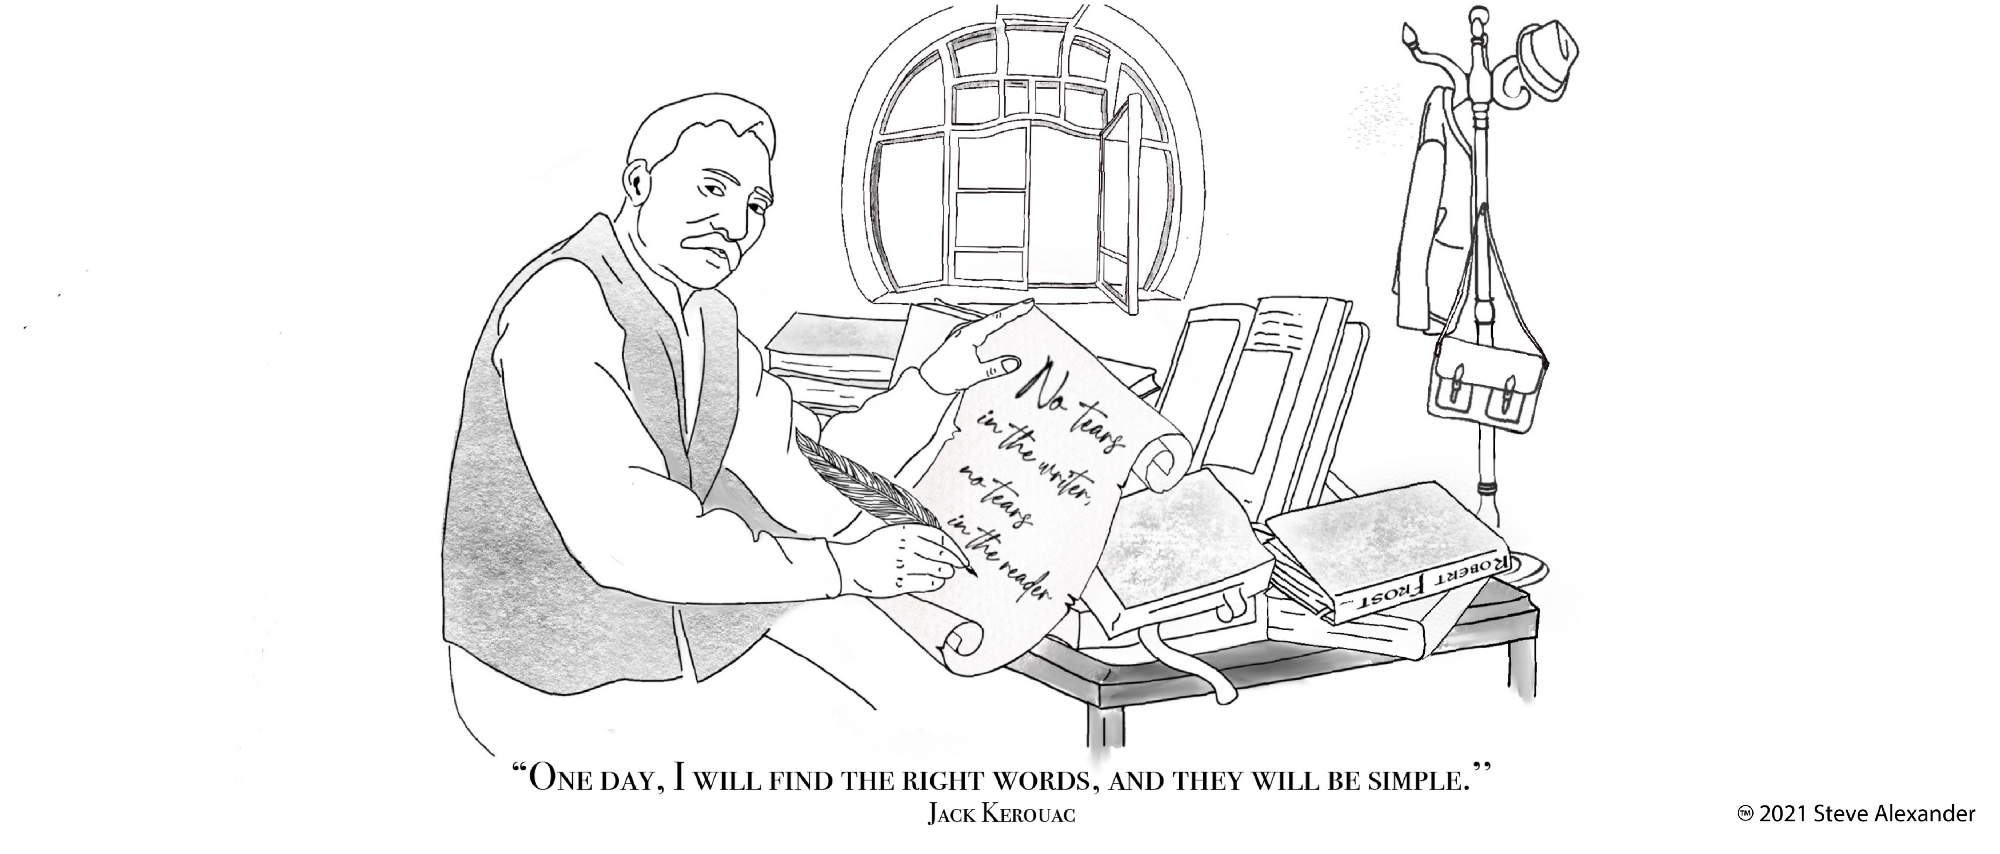 """This is a pencil sketch of a writer seated at his cluttered, book-strewn desk holding a scroll in his left hand and a quill pen in his right. On the scroll is the quote """"No tears in the writer, no tears in the reader,"""" from Robert Frost. In the background is a circular window with one pane open. In the right middle ground stands a hat rack with his hat, coat and satchel hanging from it. At the bottom is the quote """"One day, I will find the right words, and they will be simple,"""" from Jack Kerouac."""